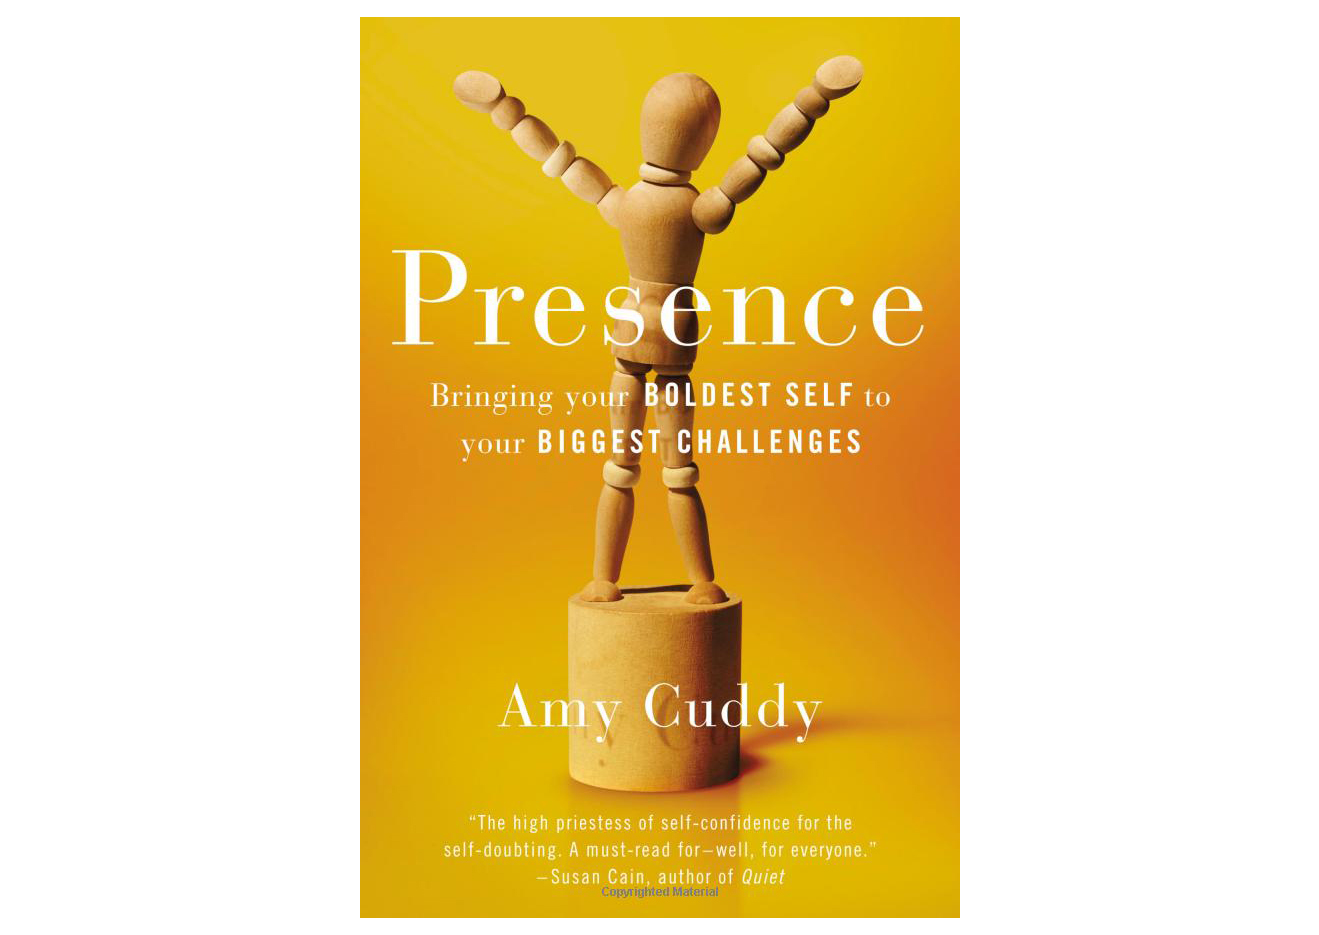 Presence: Bringing Your Boldest Self to Your Biggest Challenges by Amy Cuddy